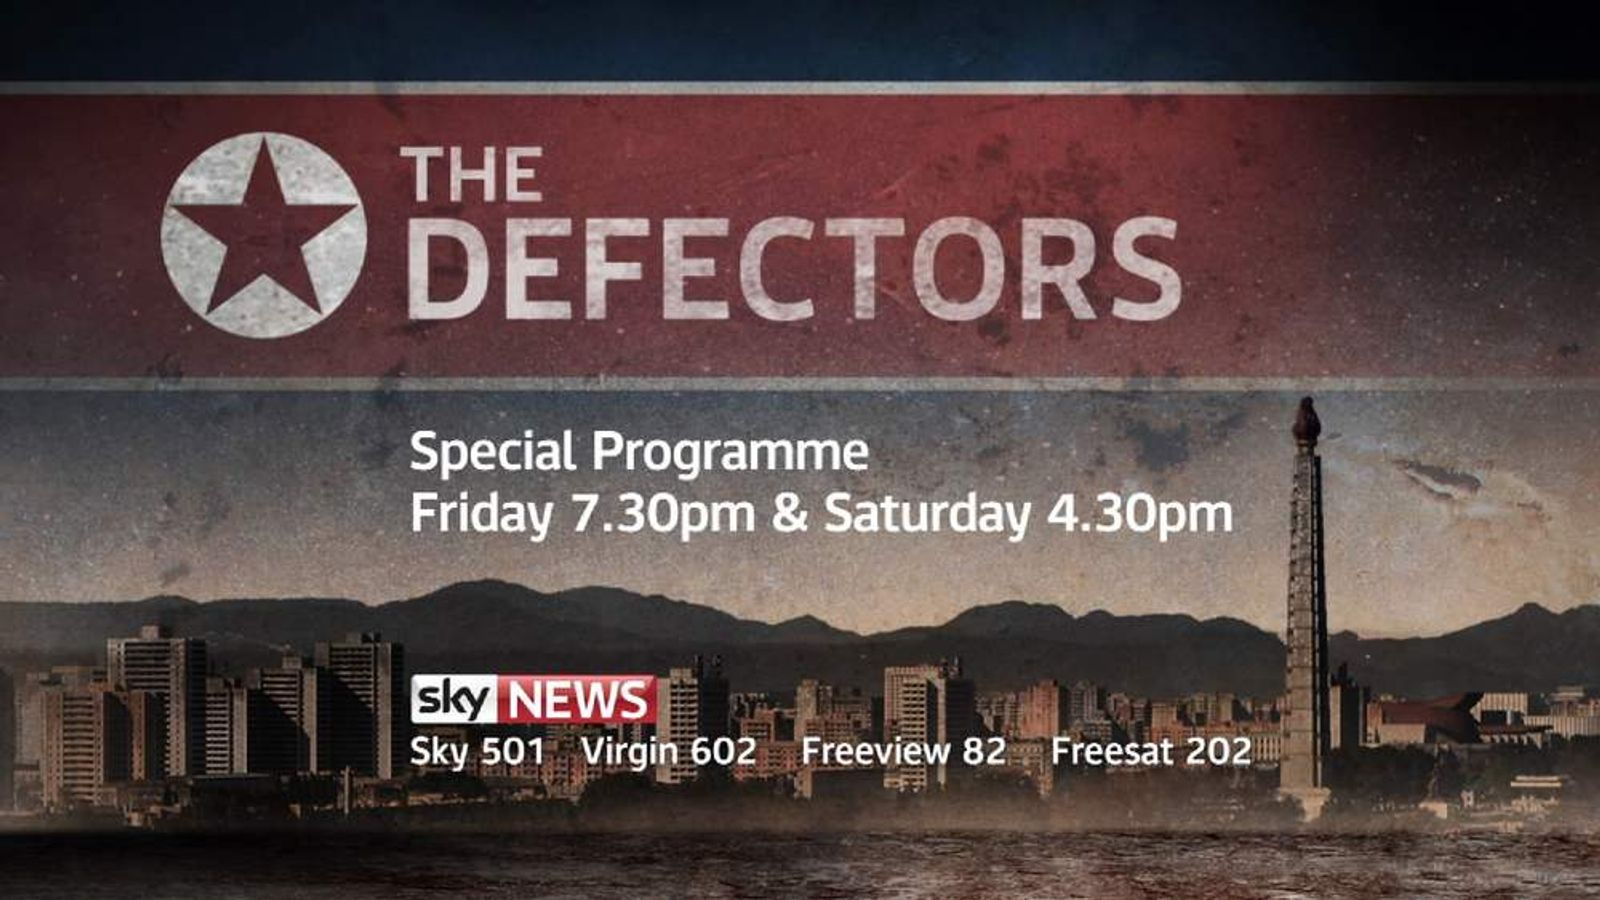 The Defectors - Sky News Special Programme